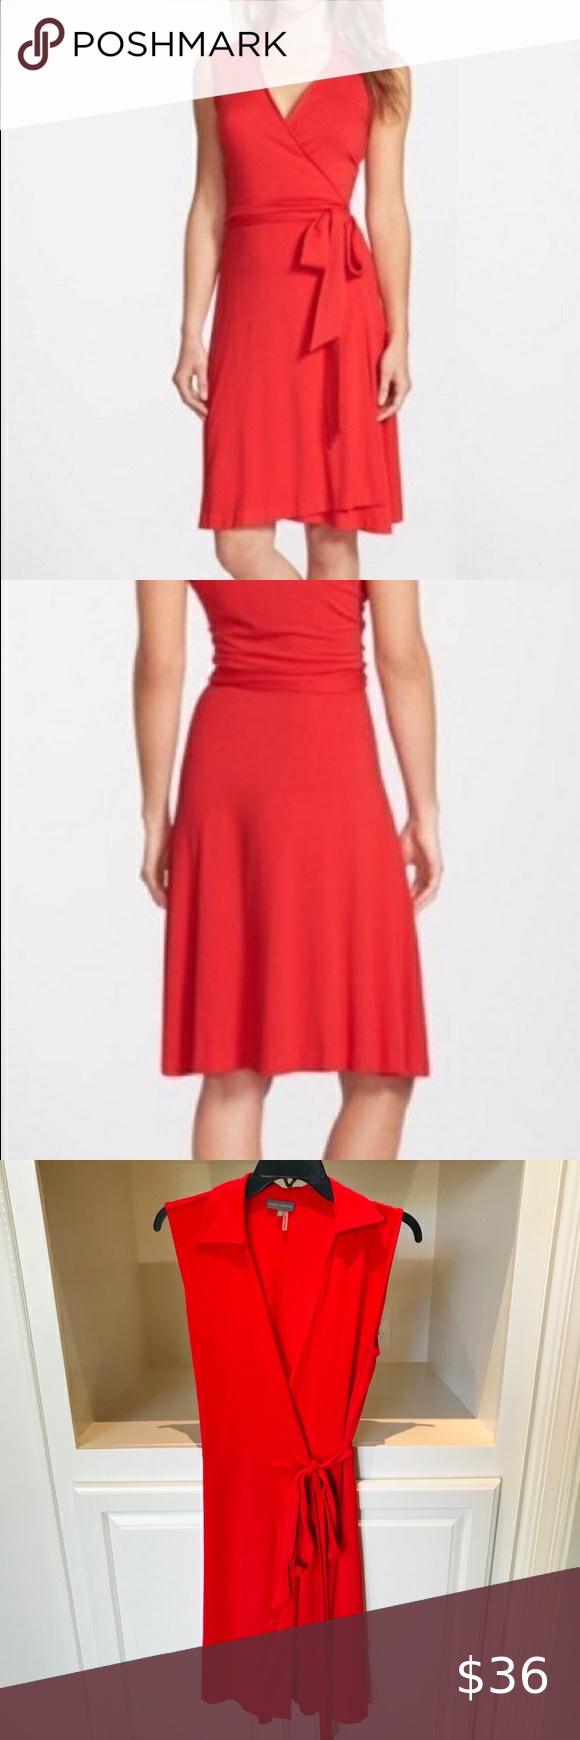 Vince Camuto Sleeveless Wrap Dress Euc So Fun Flattering And Easy To Wear Vince Camuto Red Sleeveless Colorful Dresses Sleeveless Wrap Dress Clothes Design [ 1740 x 580 Pixel ]